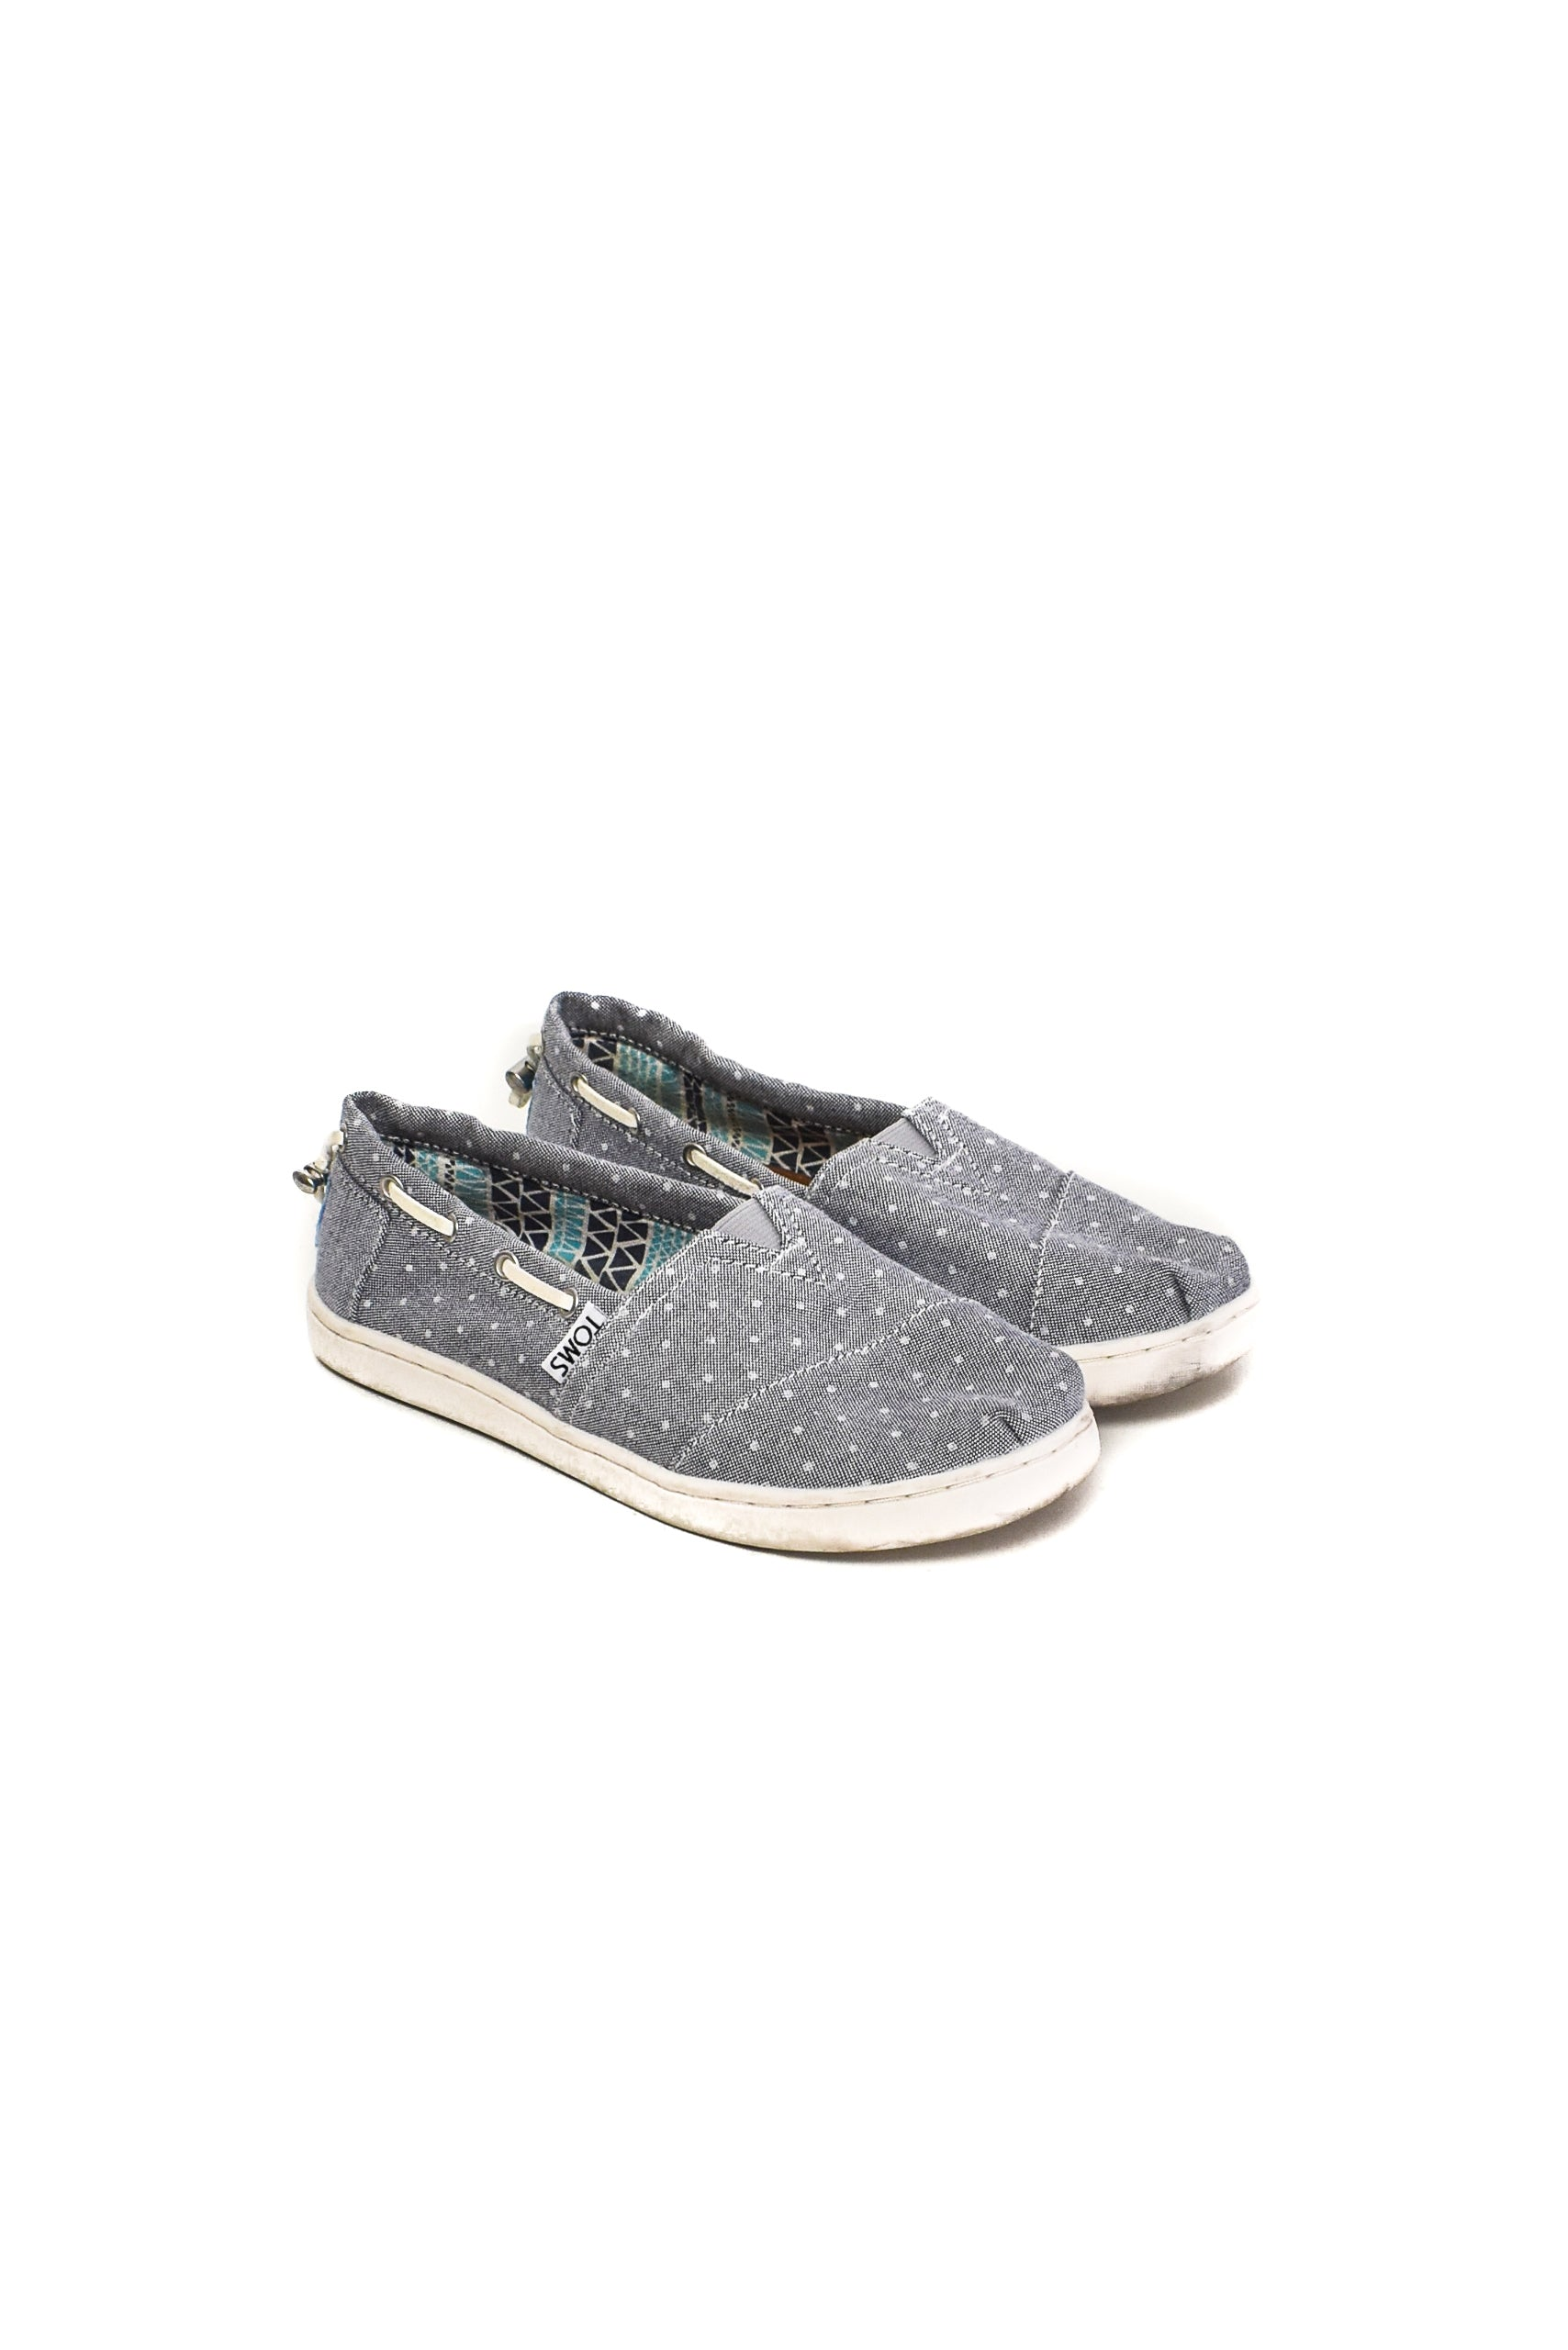 10007860 Toms Kids~Shoes 7 (US 2) at Retykle